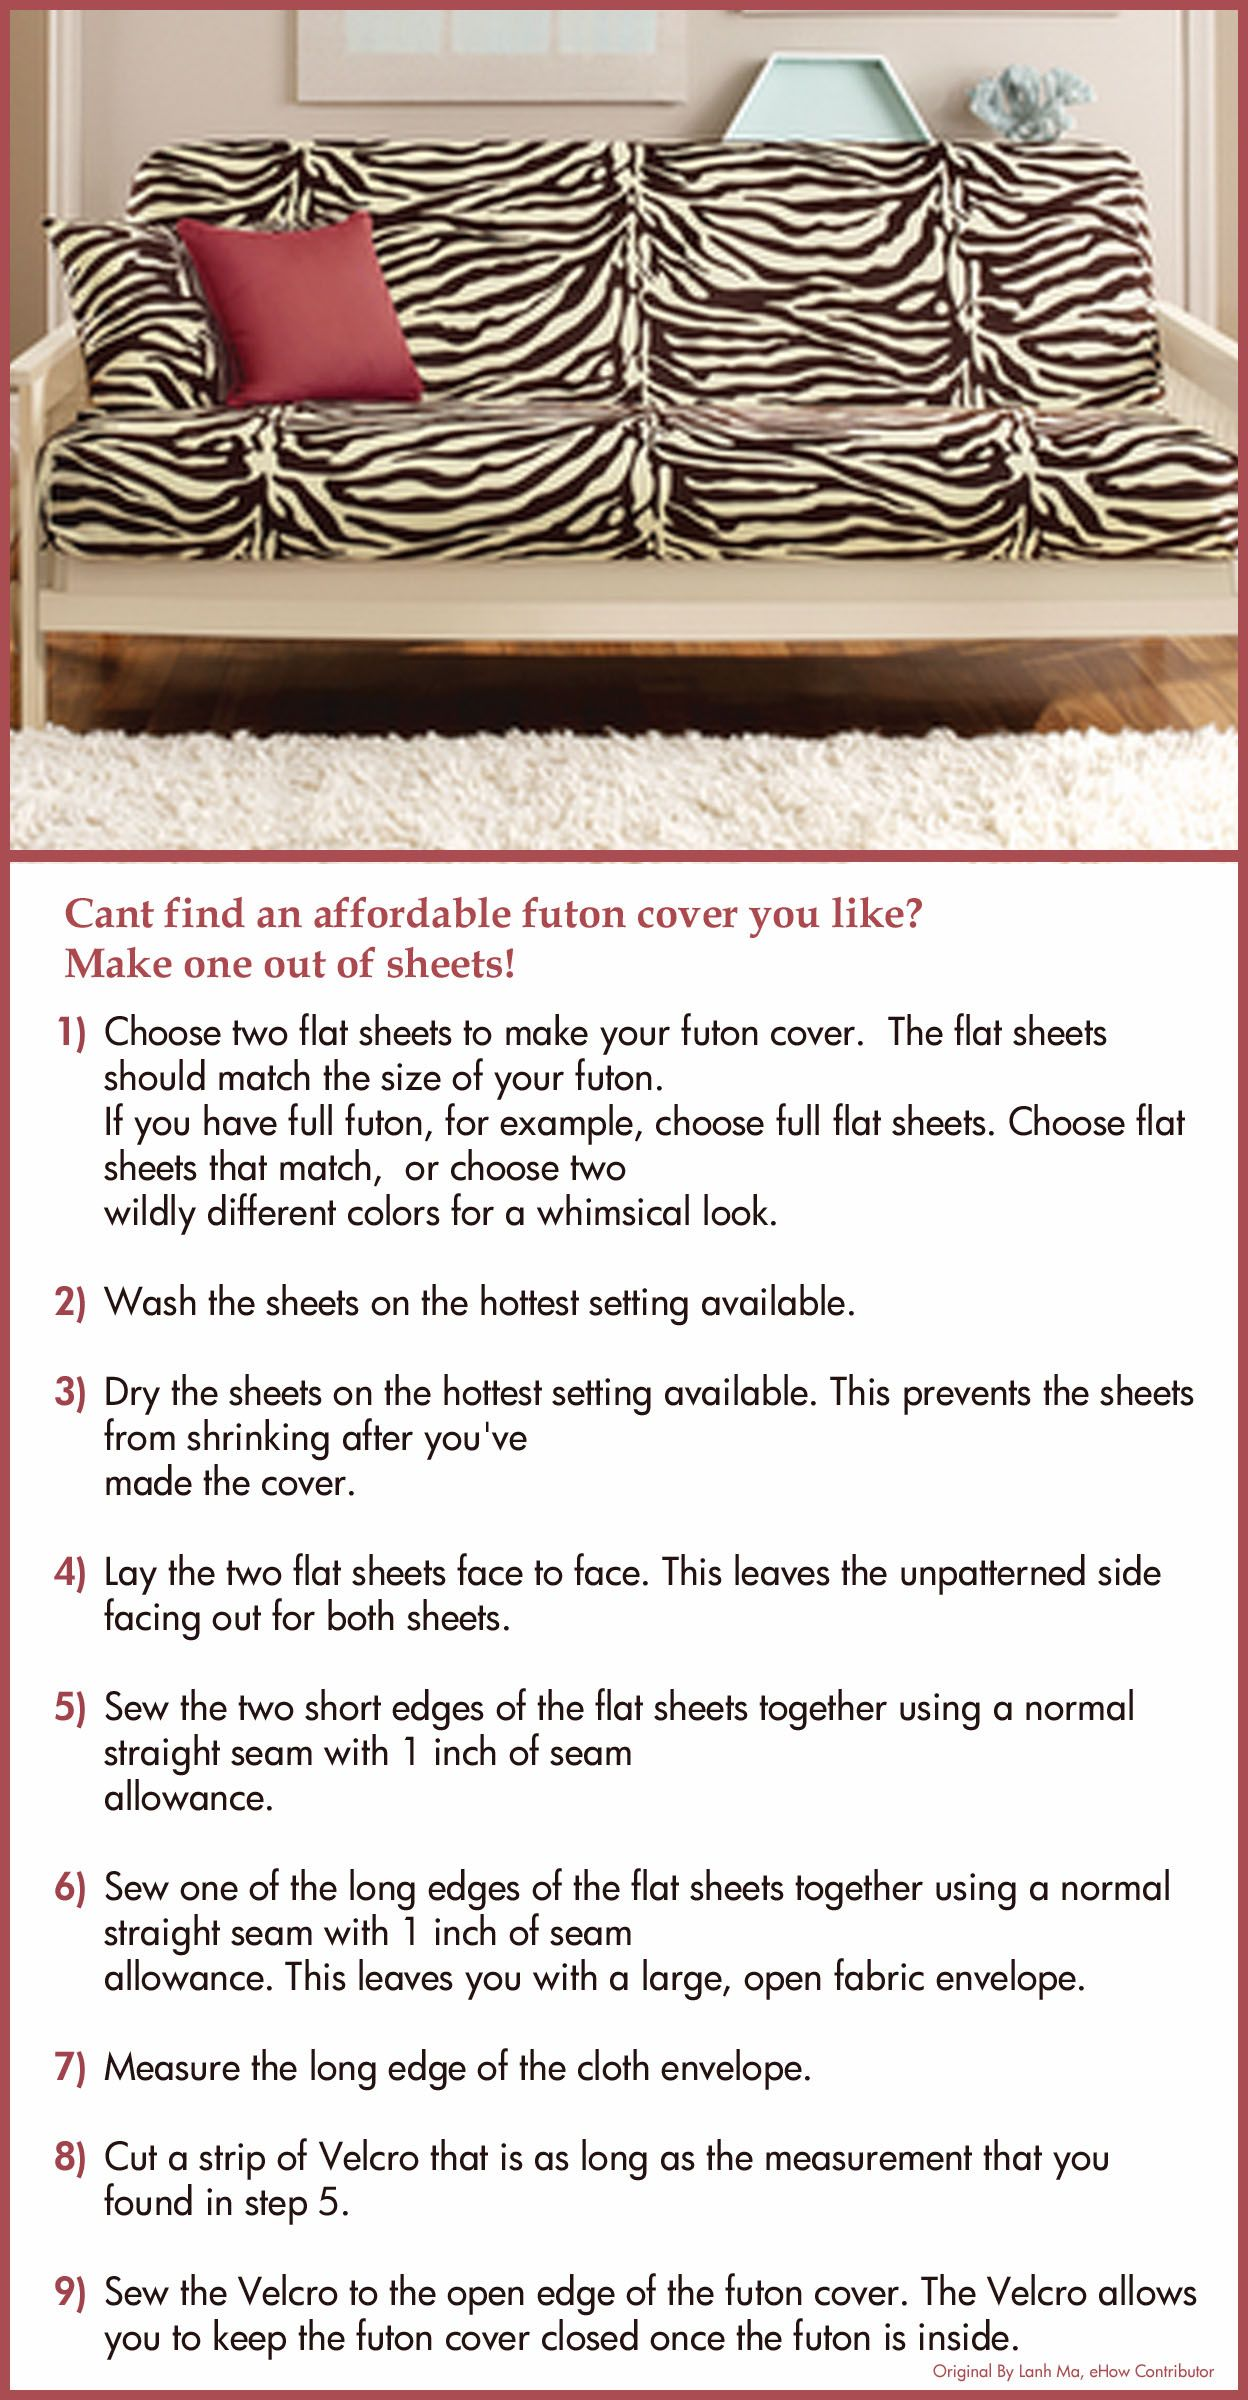 Make Your Own Futon Cover